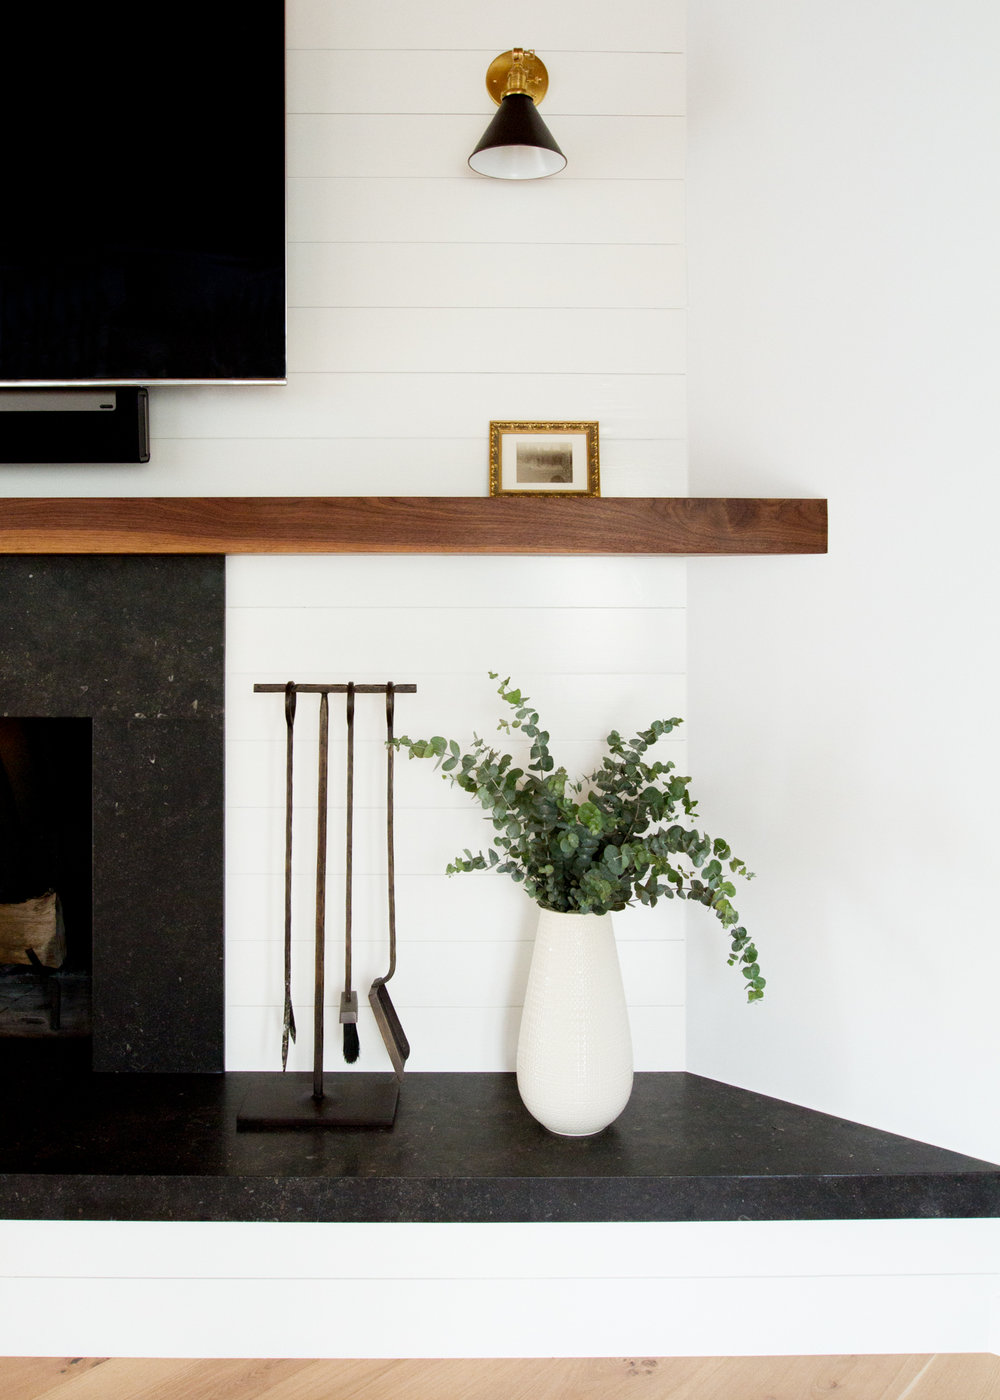 Topanga Canyon Modern Farmhouse Fireplace Redesign - Lauren Bradshaw Design